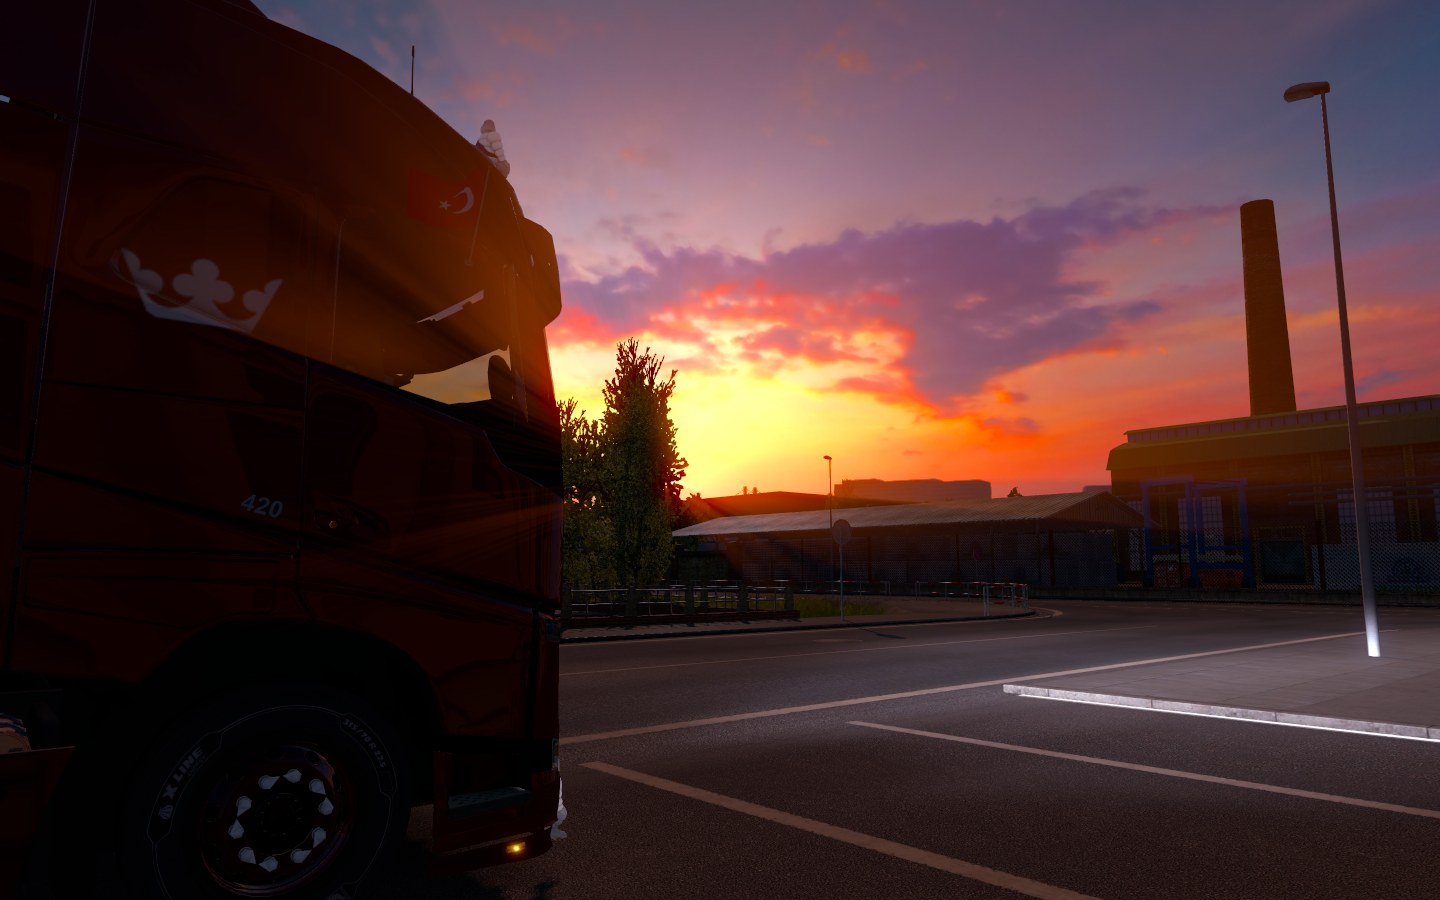 ets2_20190525_133208_00.png